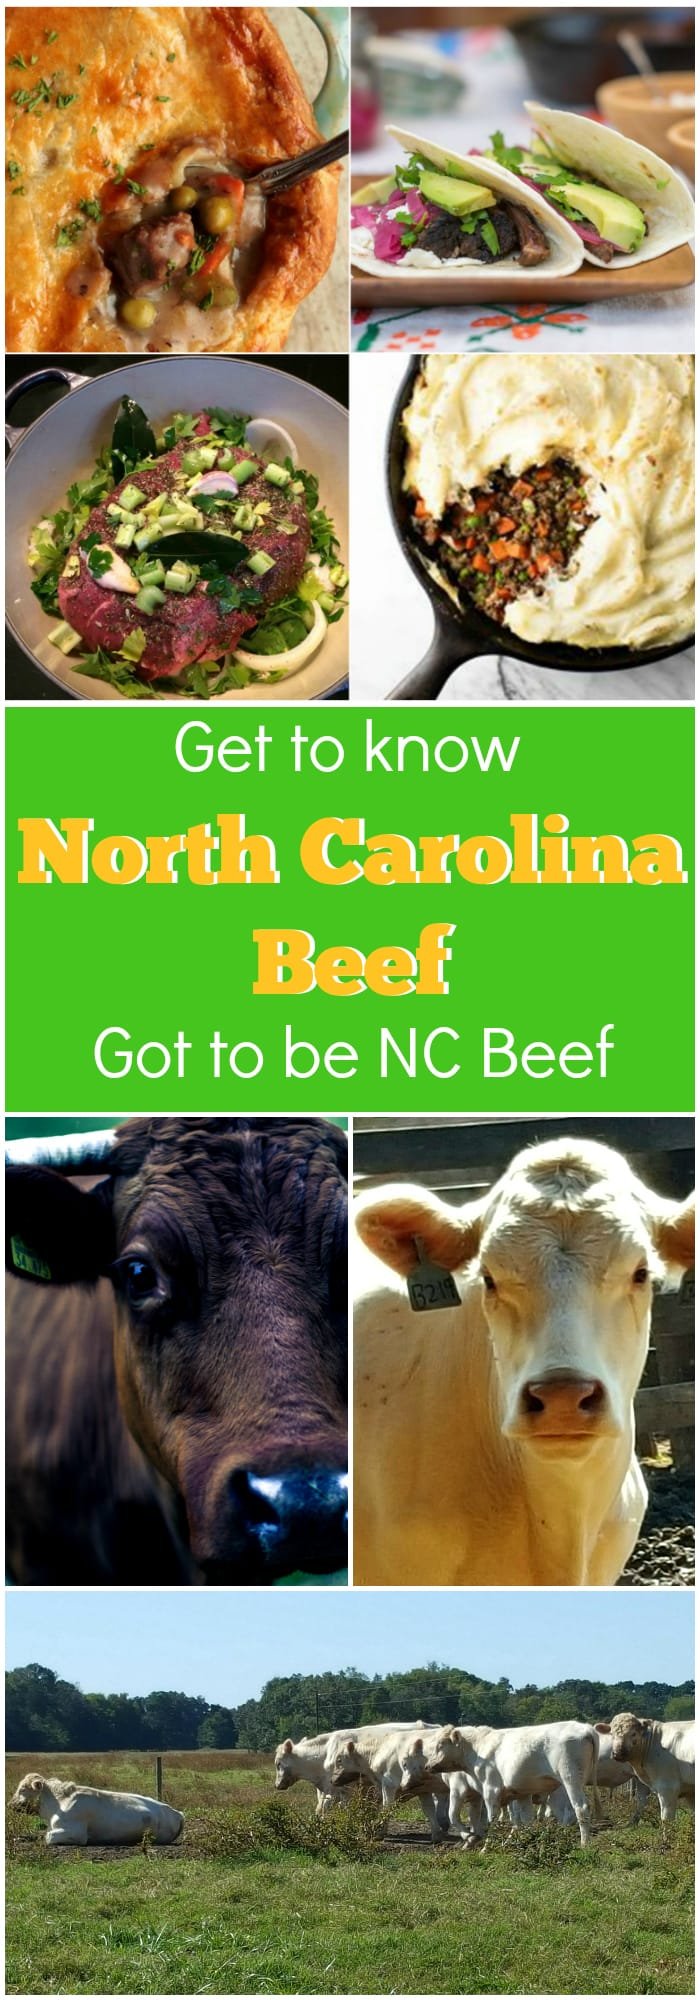 Get to know North Carolina Beef. NC might be better known for pork and poultry, but there are hundreds of farms, small and large, producing some excellent beef in North Carolina. Grass-fed, non-GMO, you name it and you can probably find it in NC! #sponsored | pastrychefonline.com